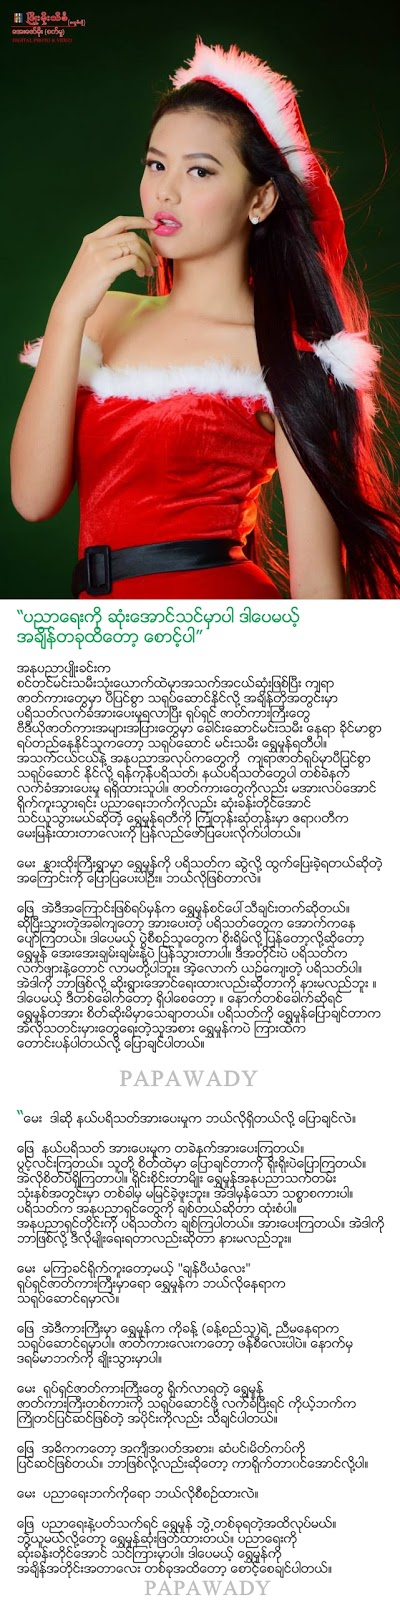 Shwe Mhone Yati - Interview With Irrawaddy Magazine